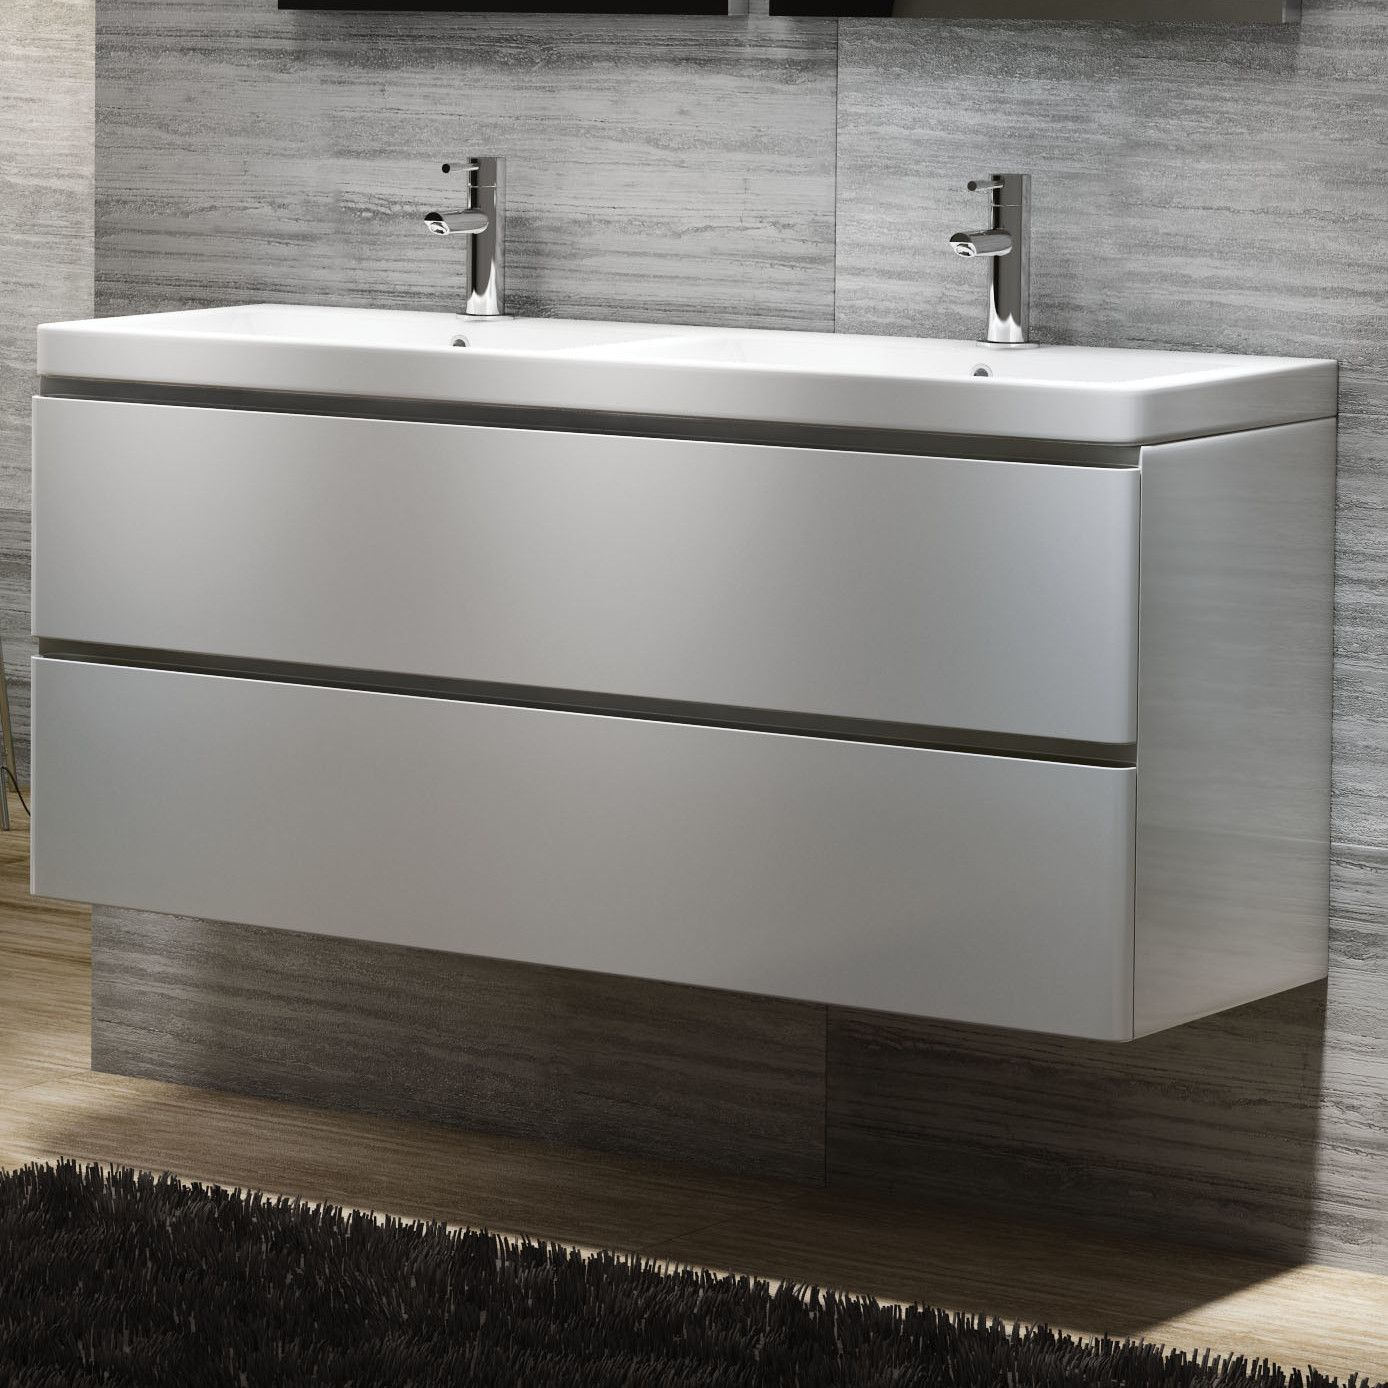 vanity basin units for bathroom. Linear Double Wall Vanity Basin Unit  White available to buy from We stock of Bathroom products at great discount prices our online store Belfry 120cm Mounted Base Wayfair UK Ideas